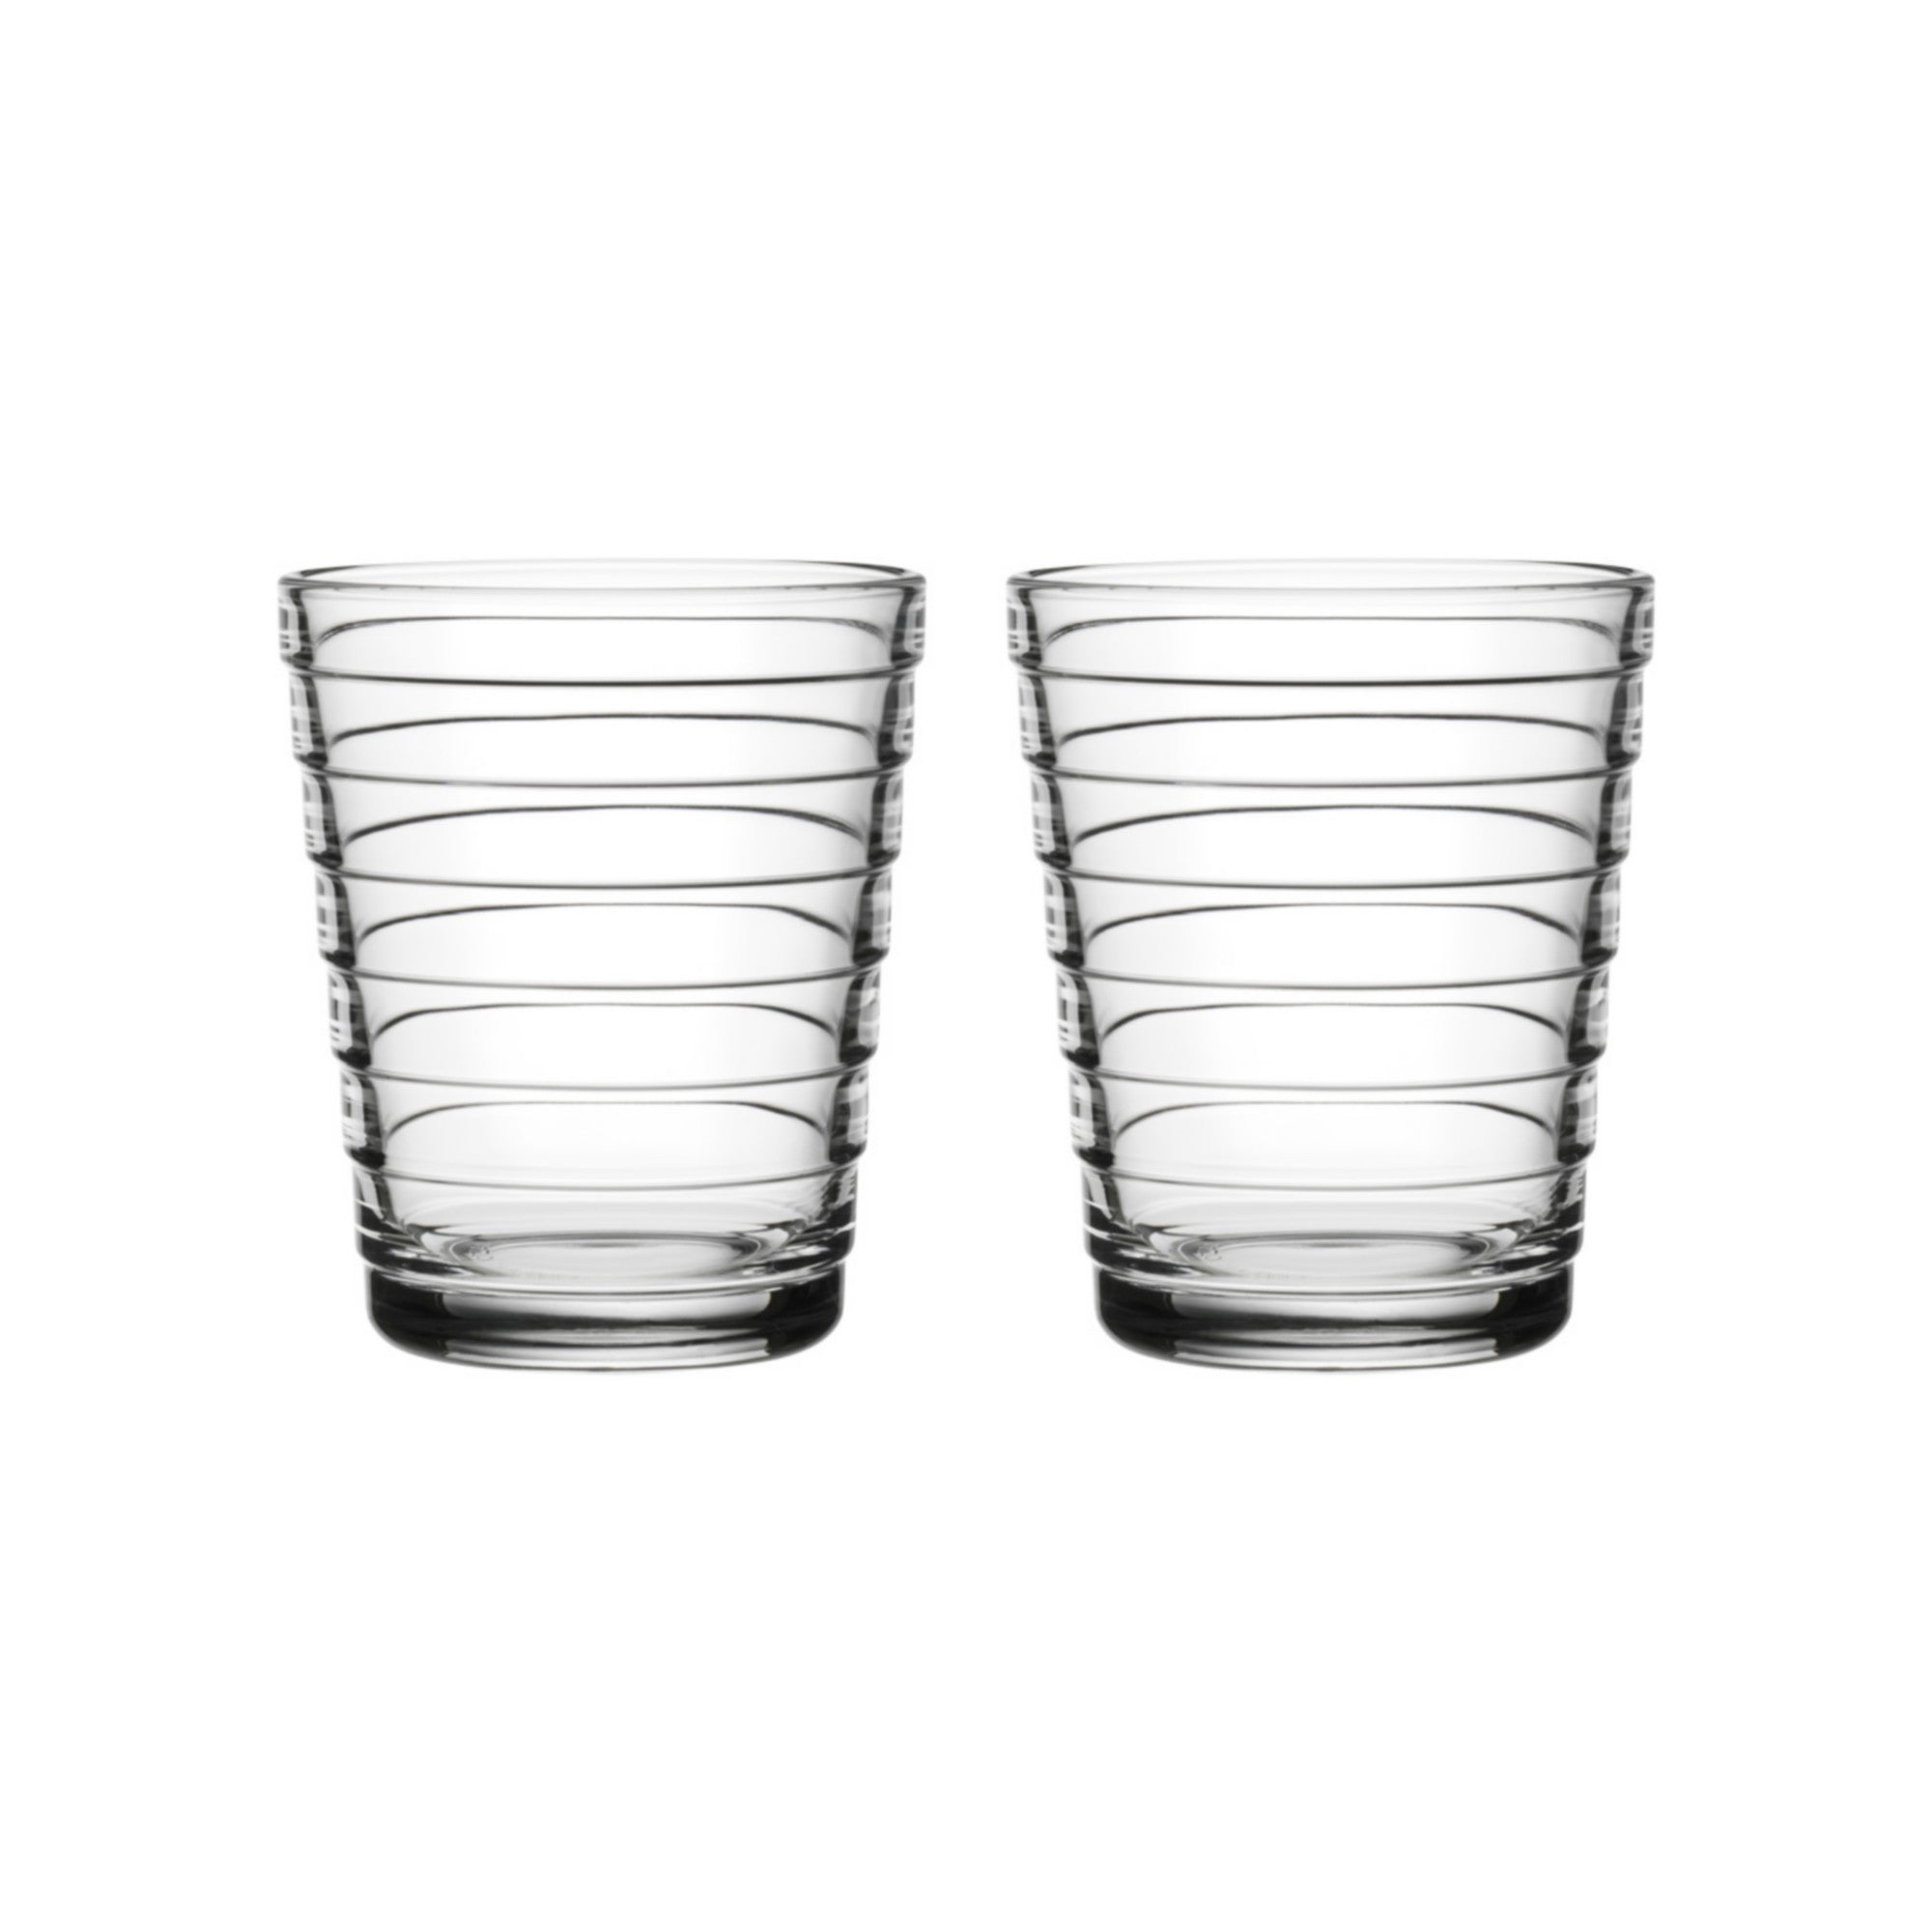 Aino Aalto tumbler 22 cl boxed set of two 7.75oz small